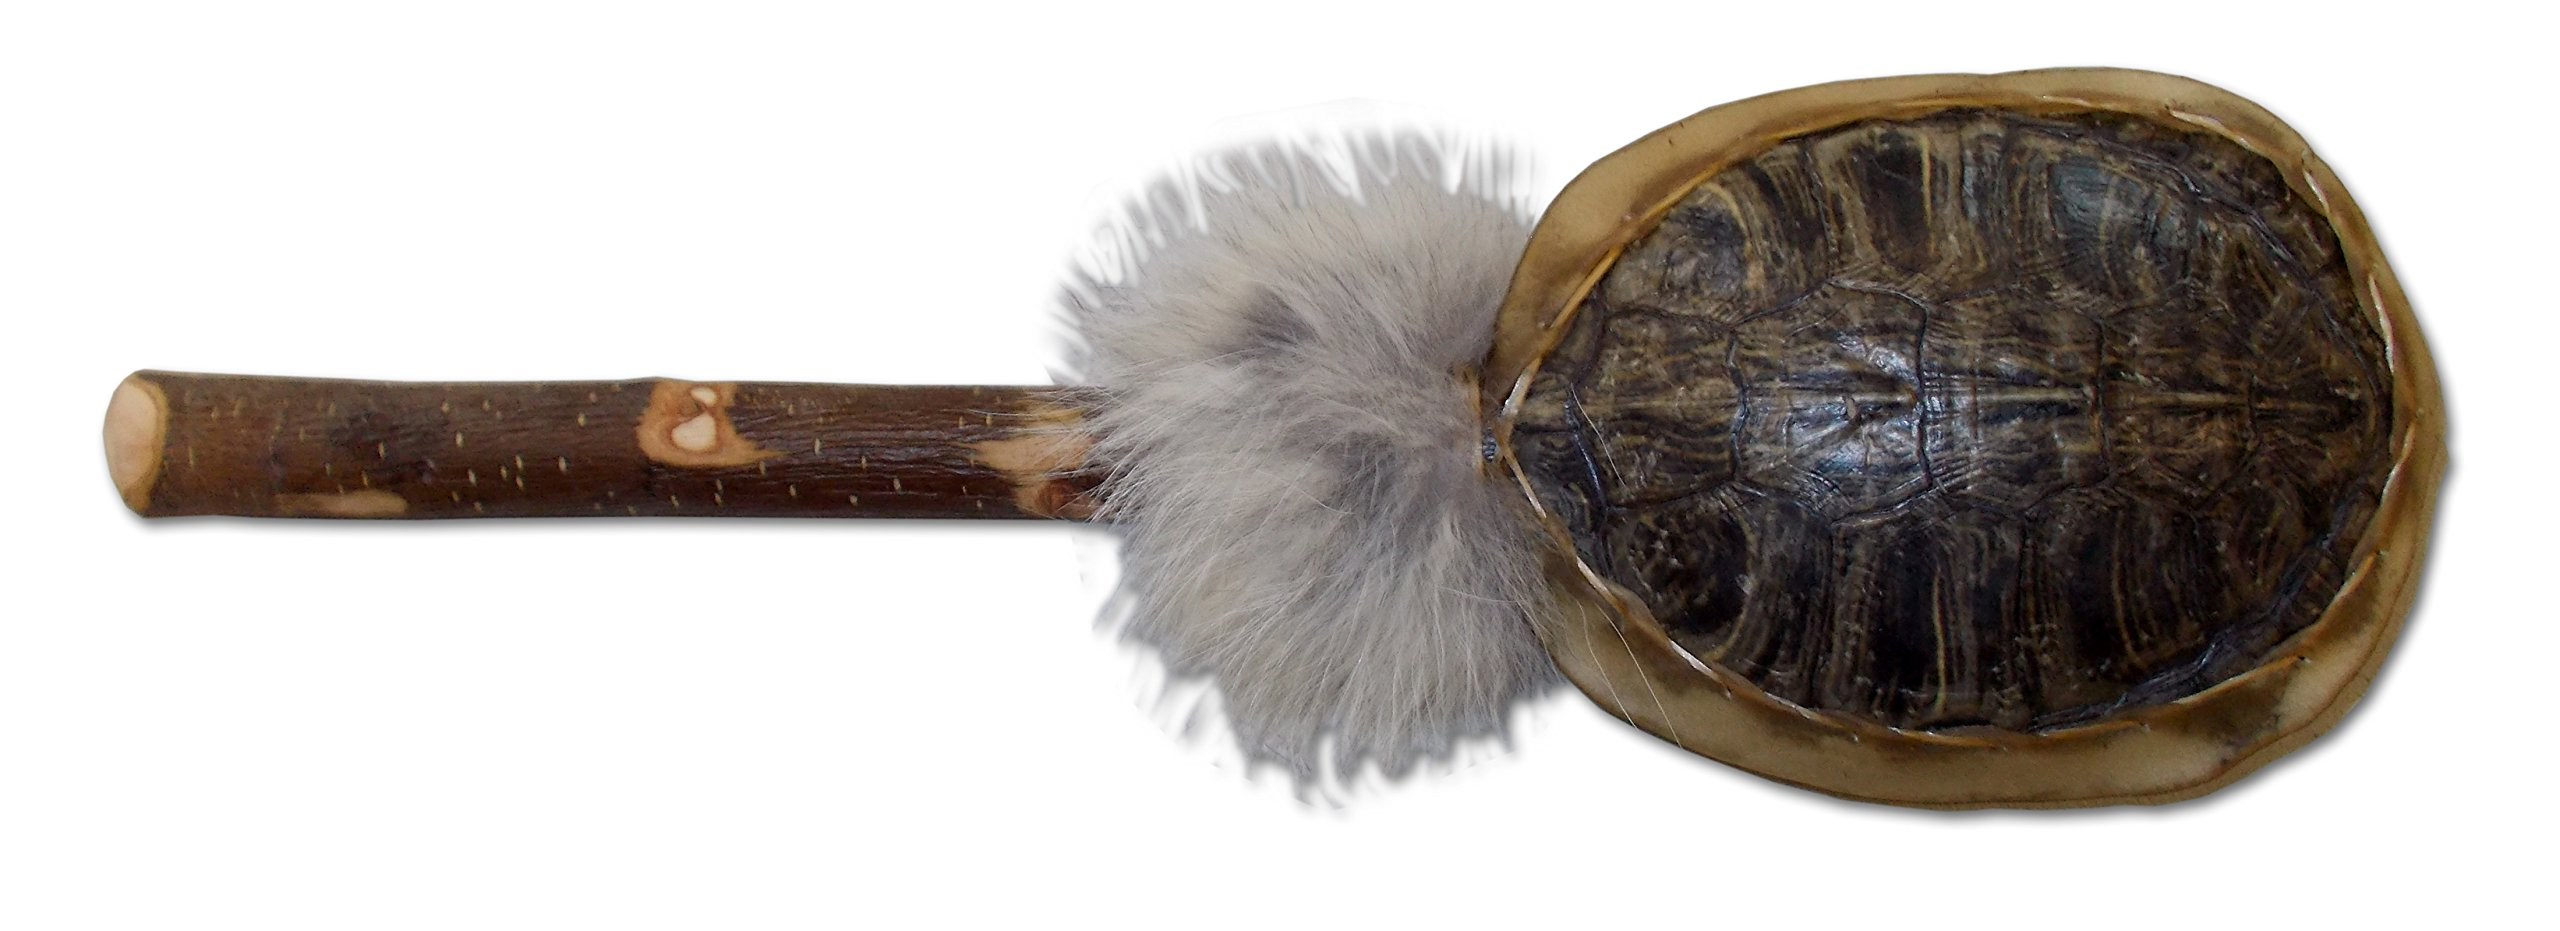 Native American Style Turtle Shell Rattle with Fur by Missouri River